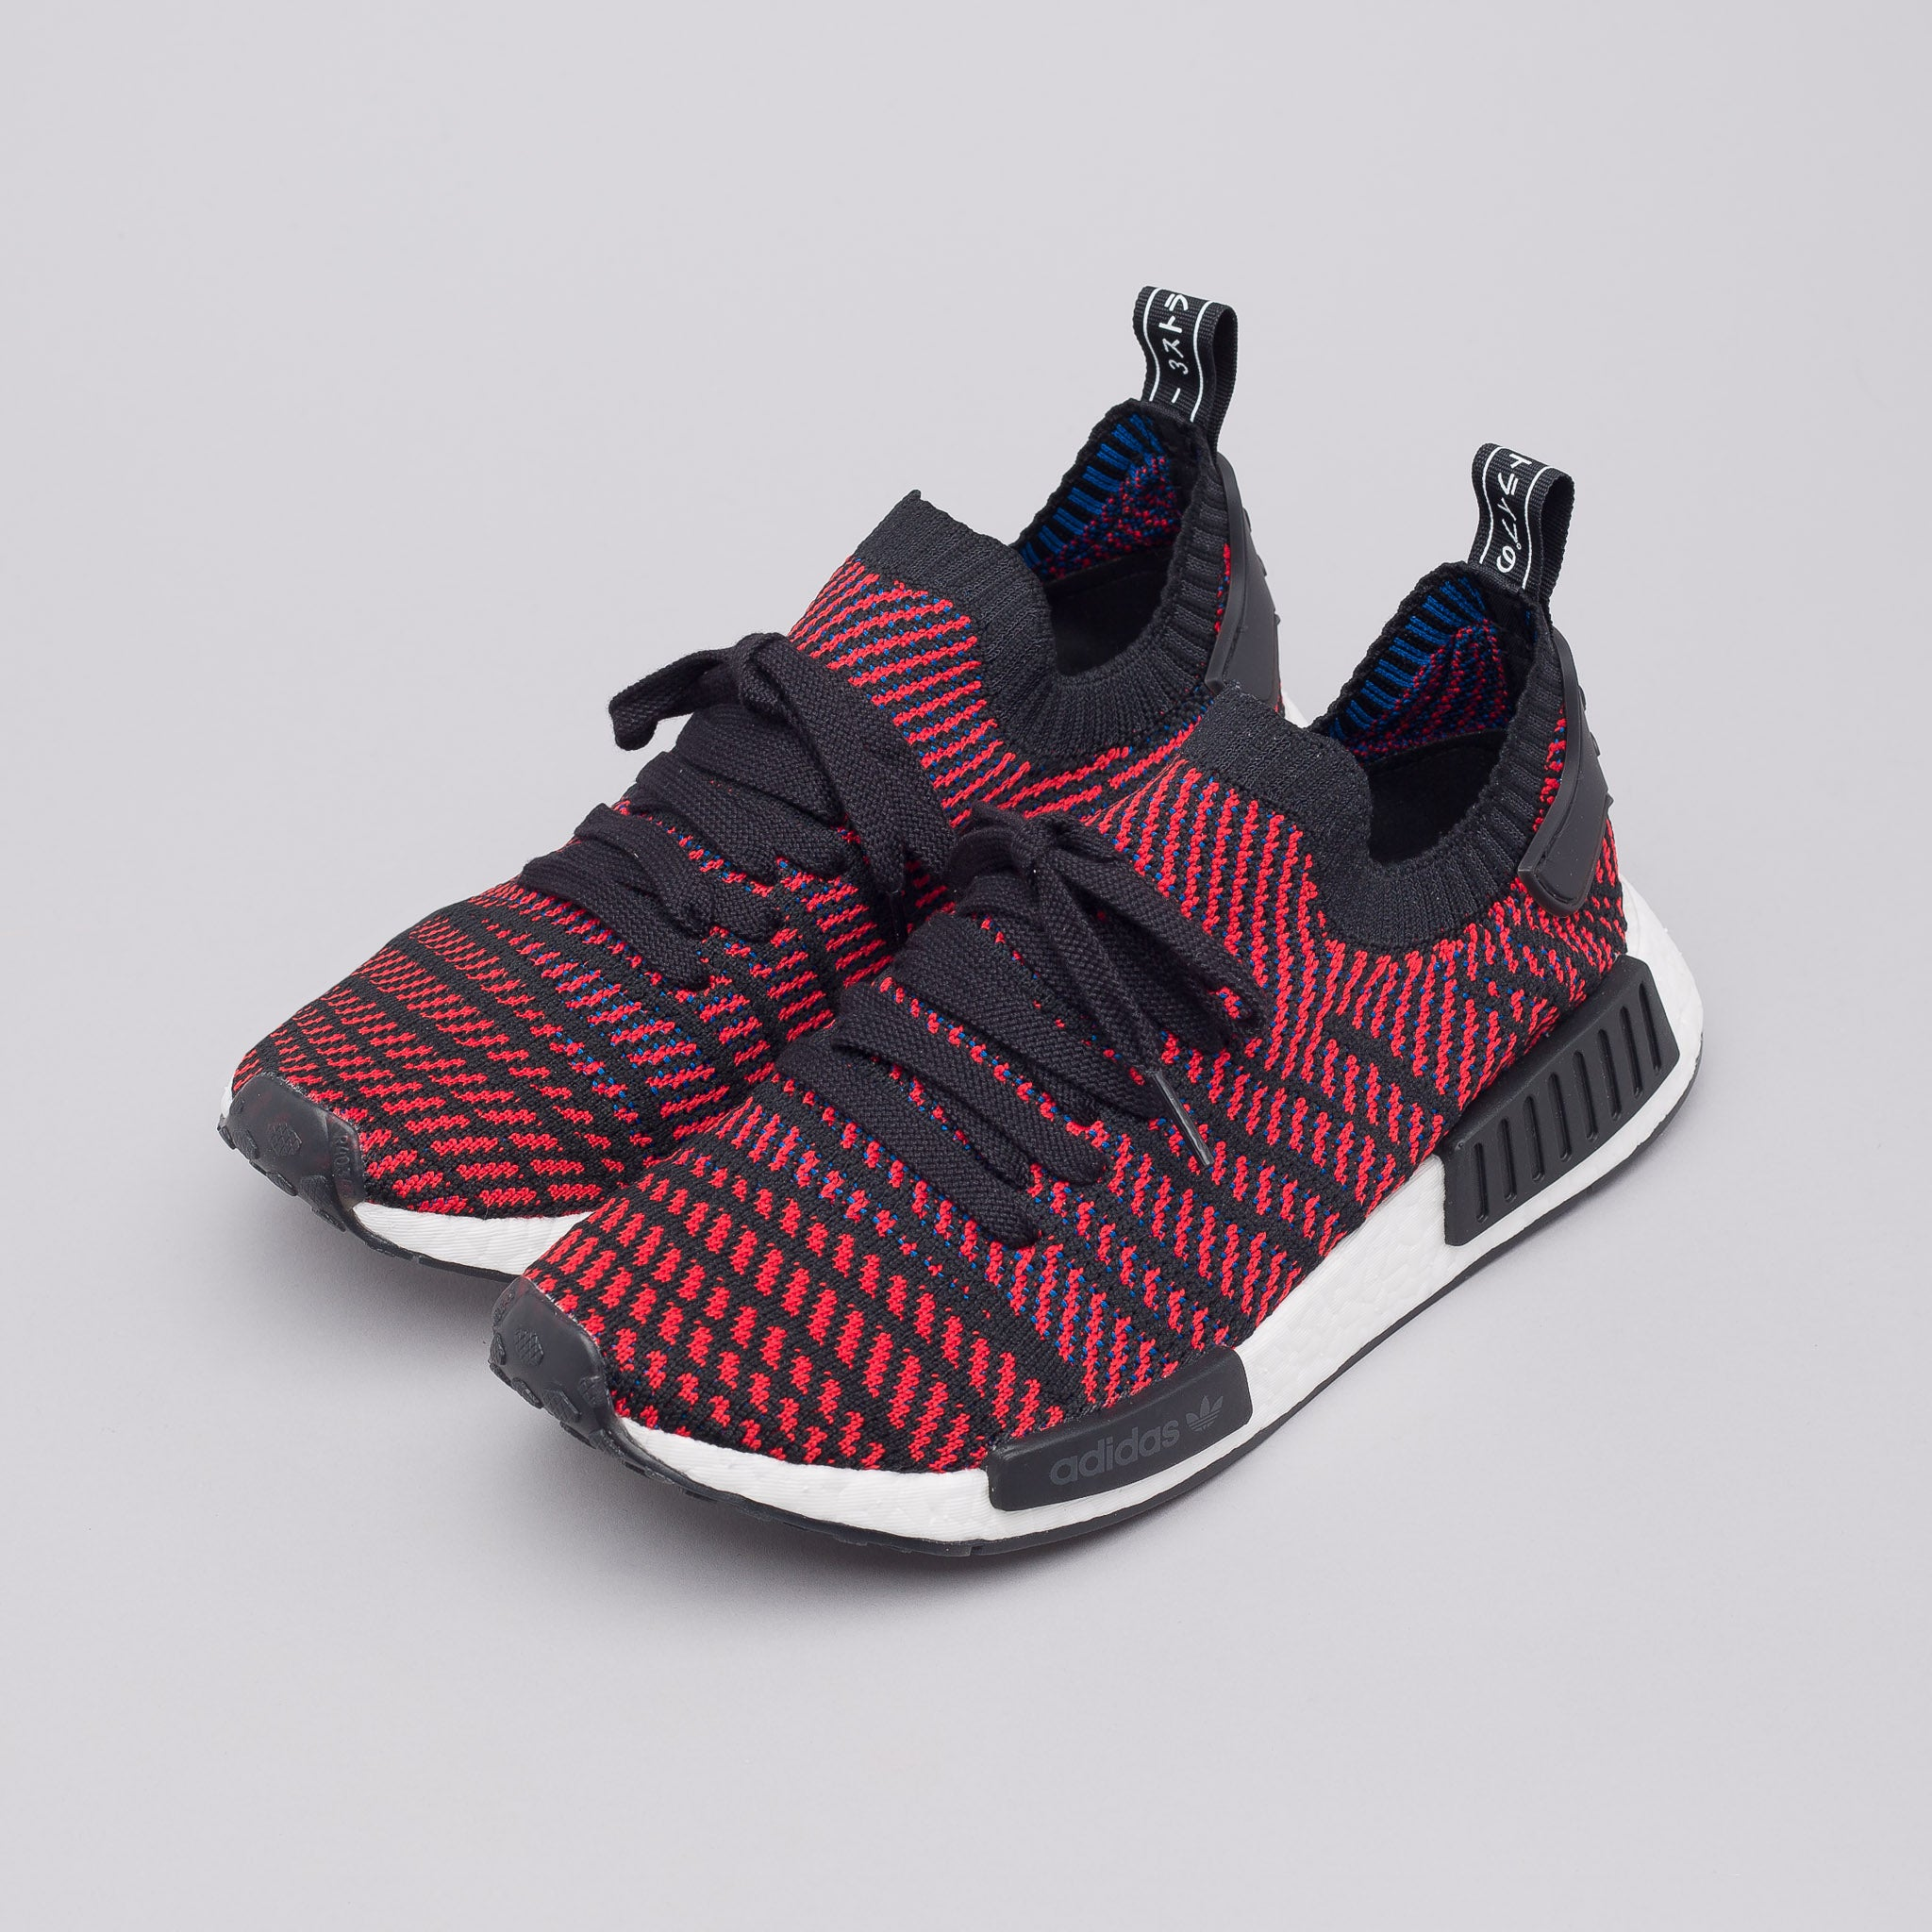 Adidas NMD R1 Sneakersnstuff Datamosh Collegiate Orange